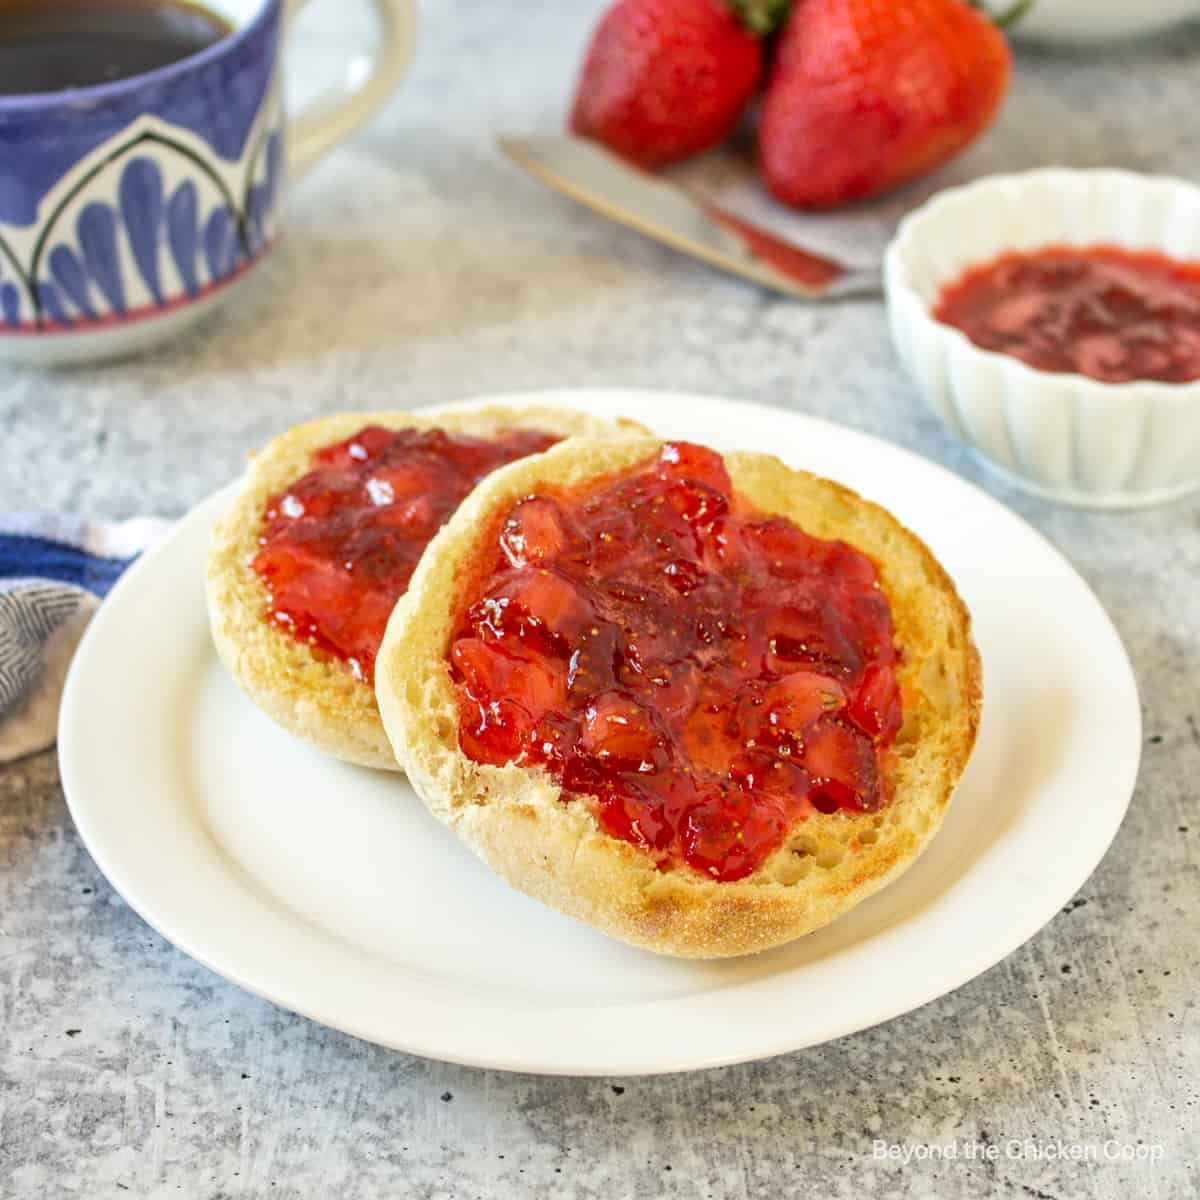 An english muffin topped with chunky strawberry jam.